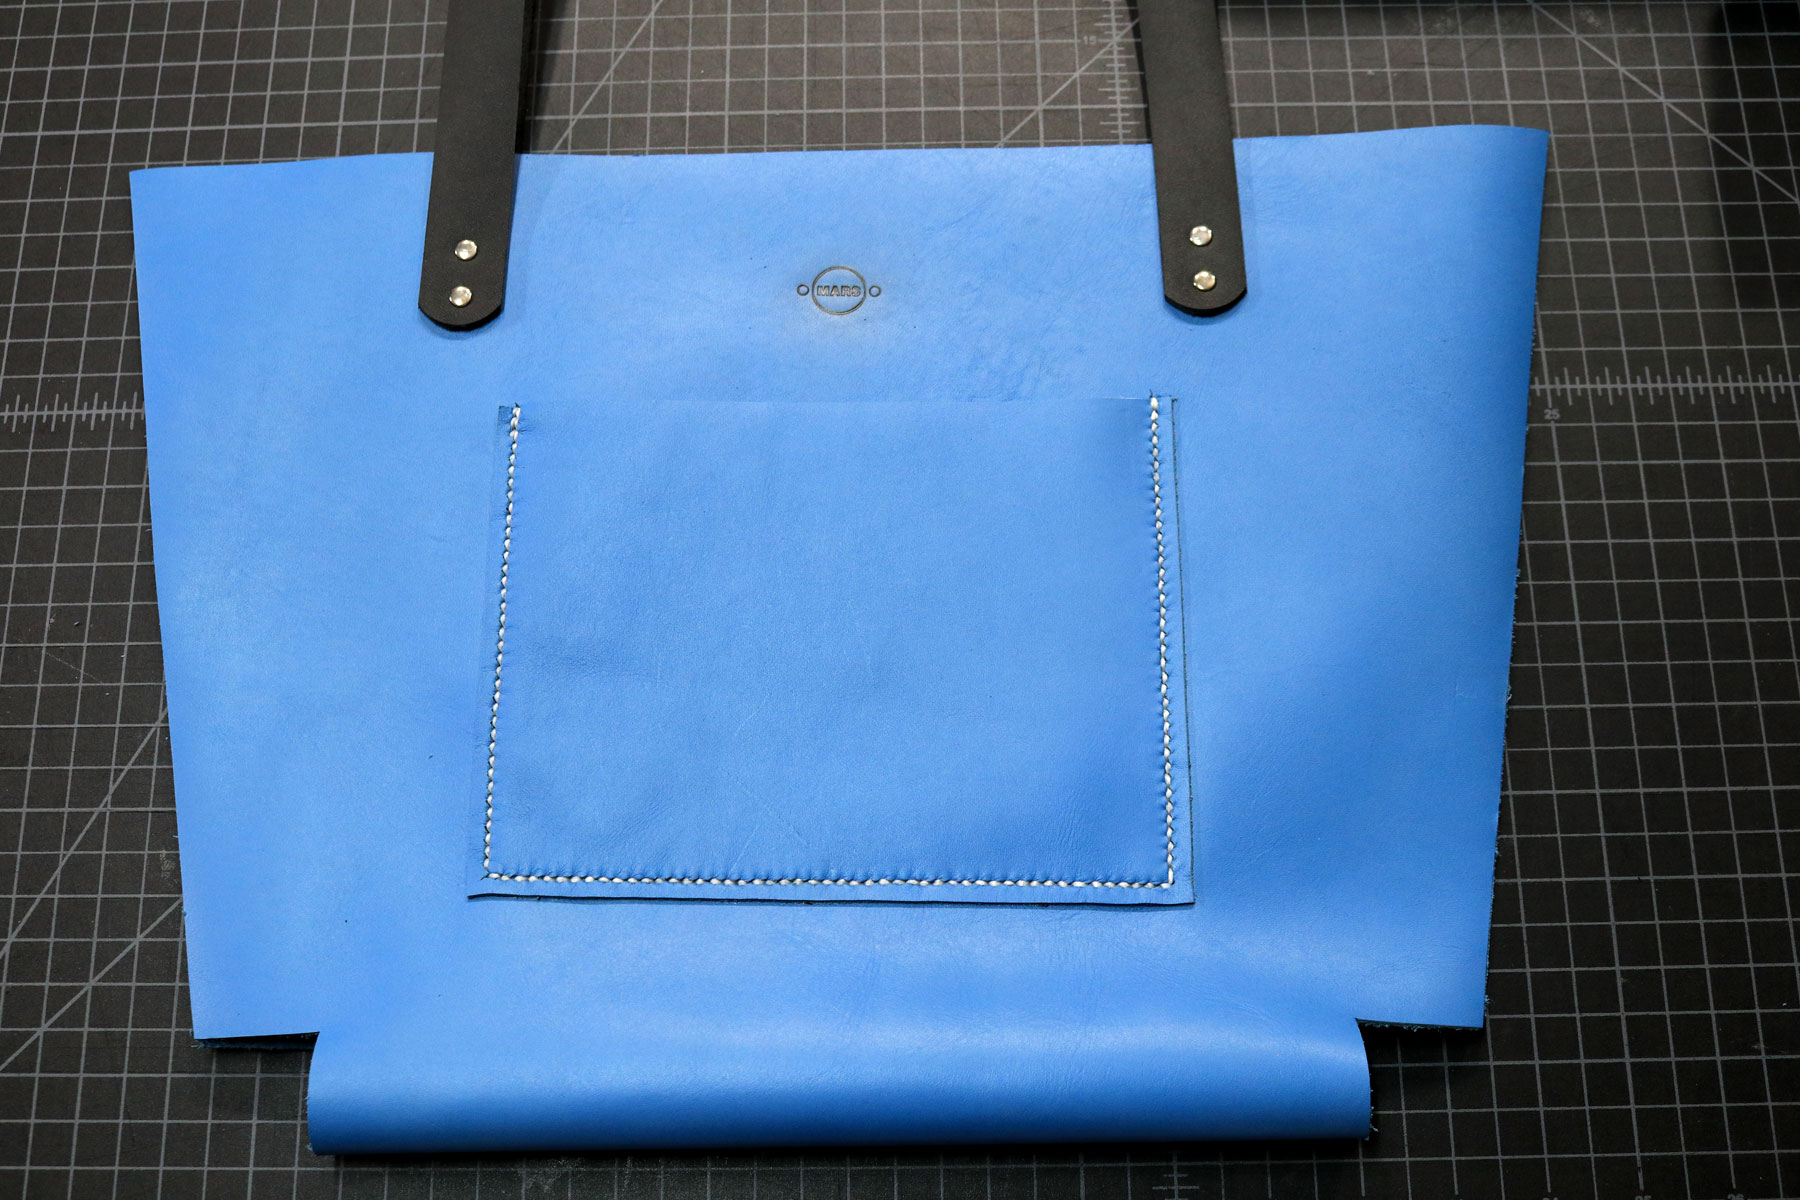 Completed saddle stitching for leather tote bag pockets